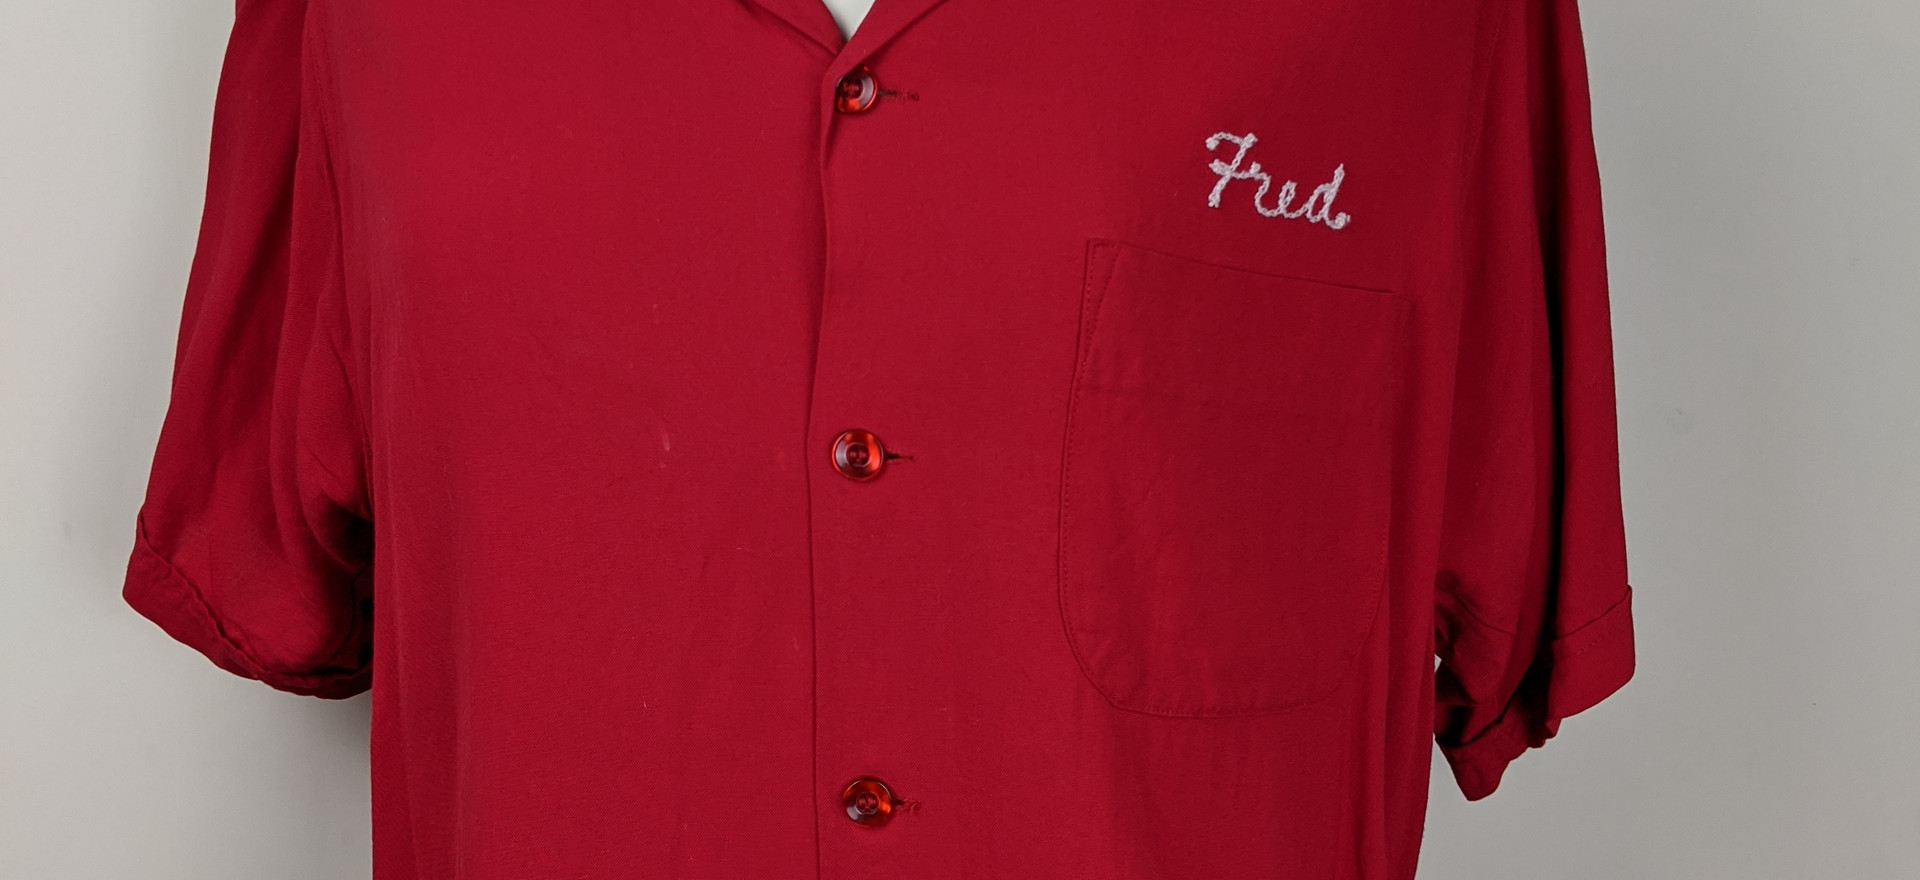 Fred Bowling Shirt Full Front View